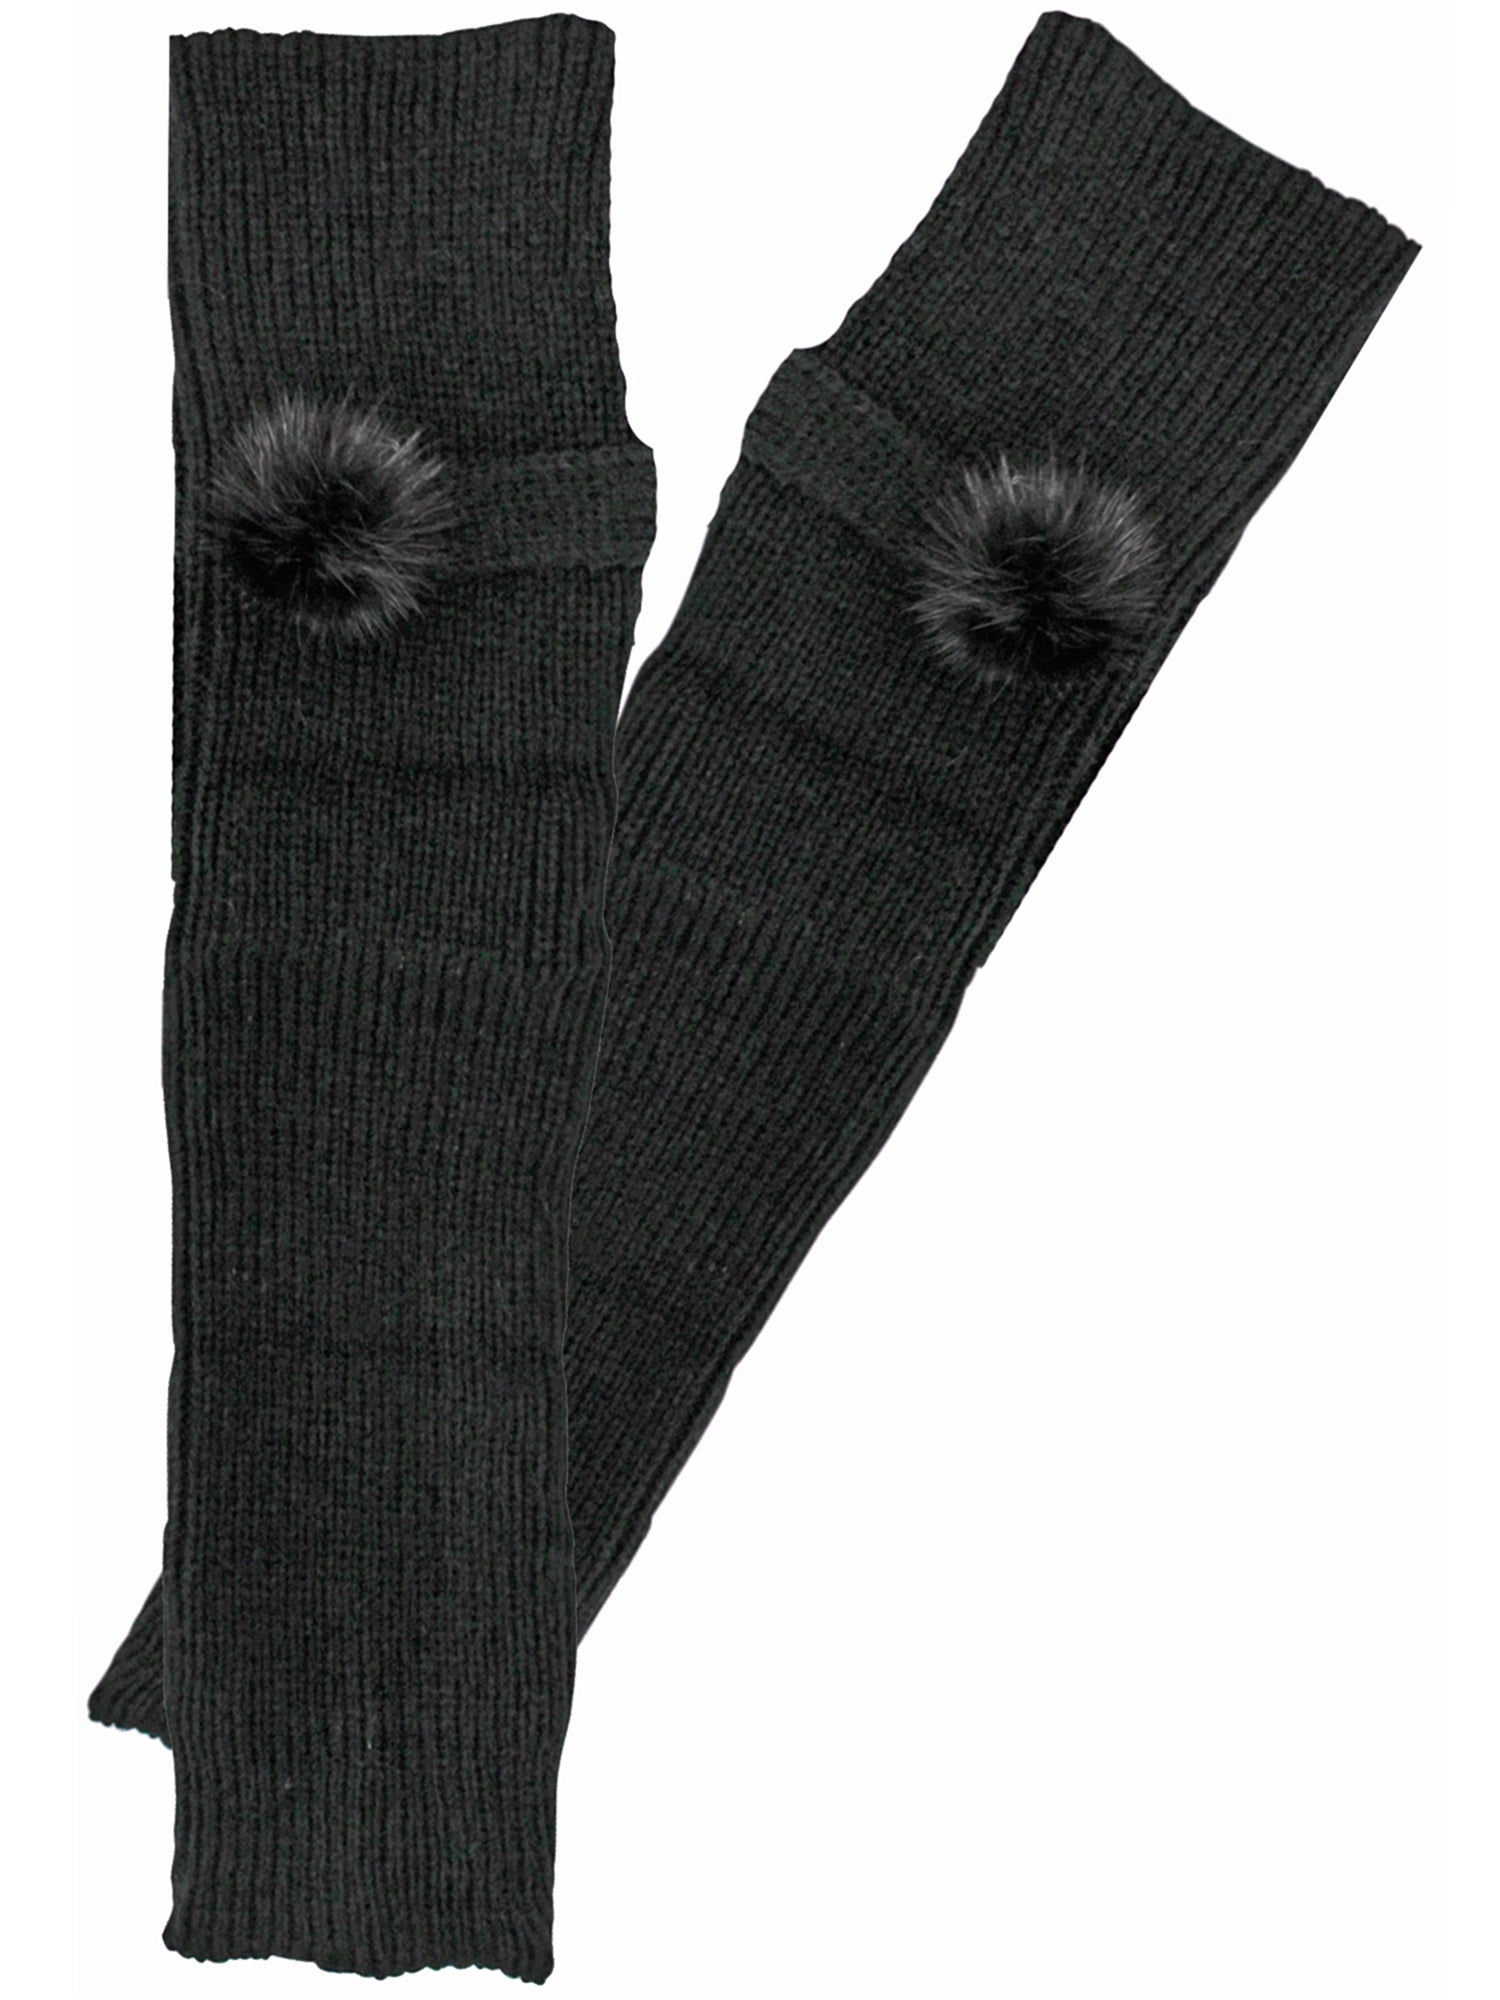 Knit Arm Warmers With Faux Fur Button